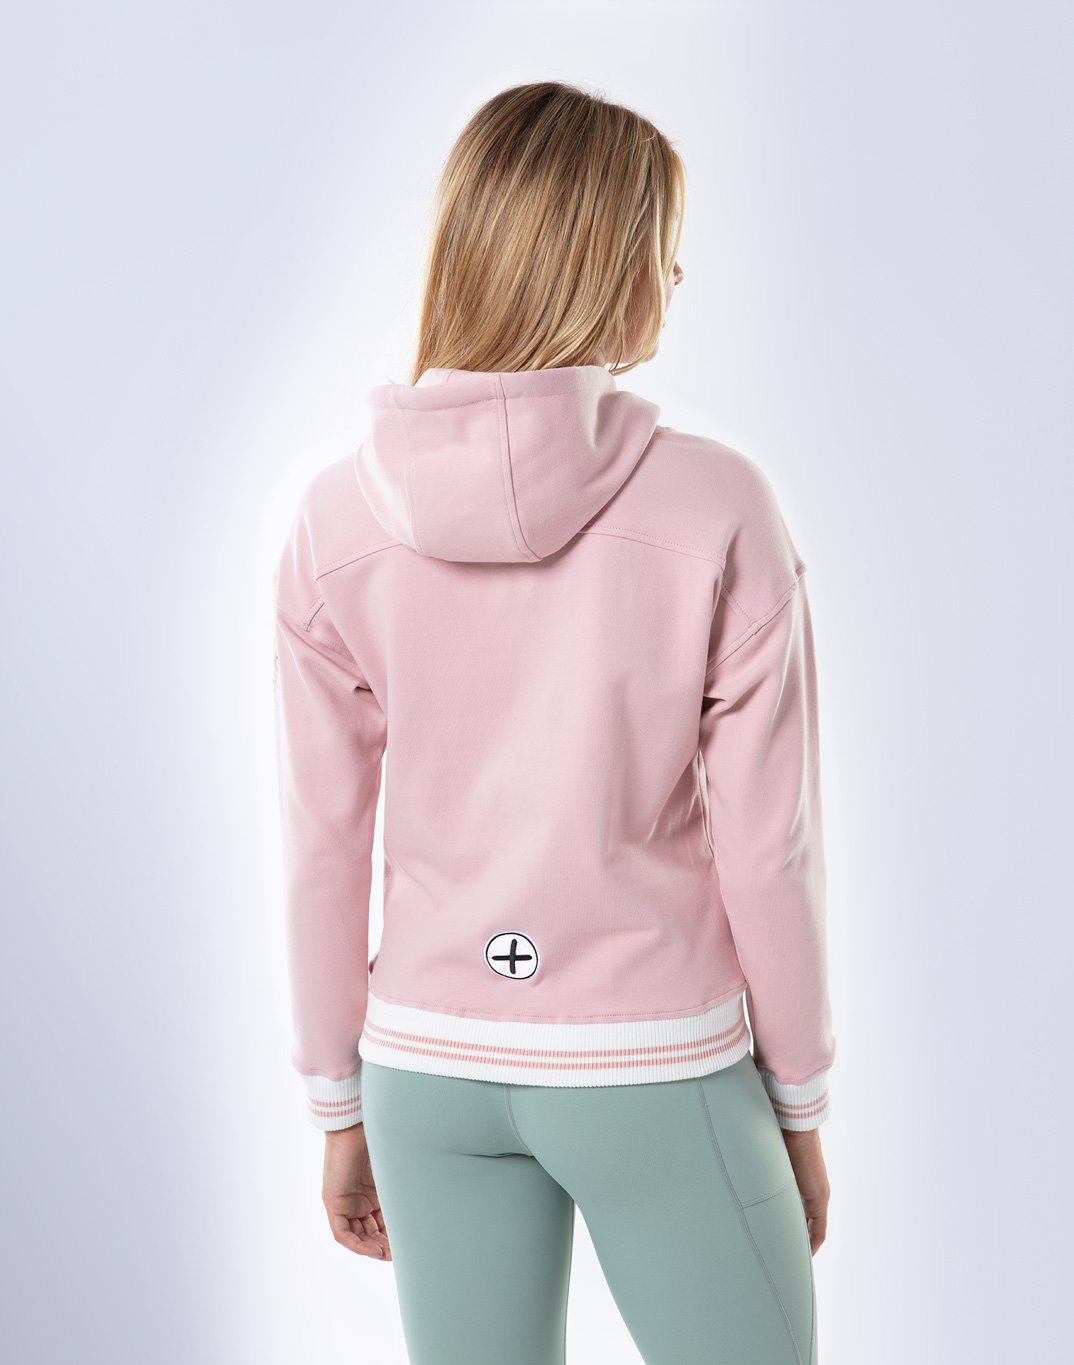 Gym Plus Coffee Hoodie Women's Retro Pullover Hoodie in Dusty Pink Designed in Ireland